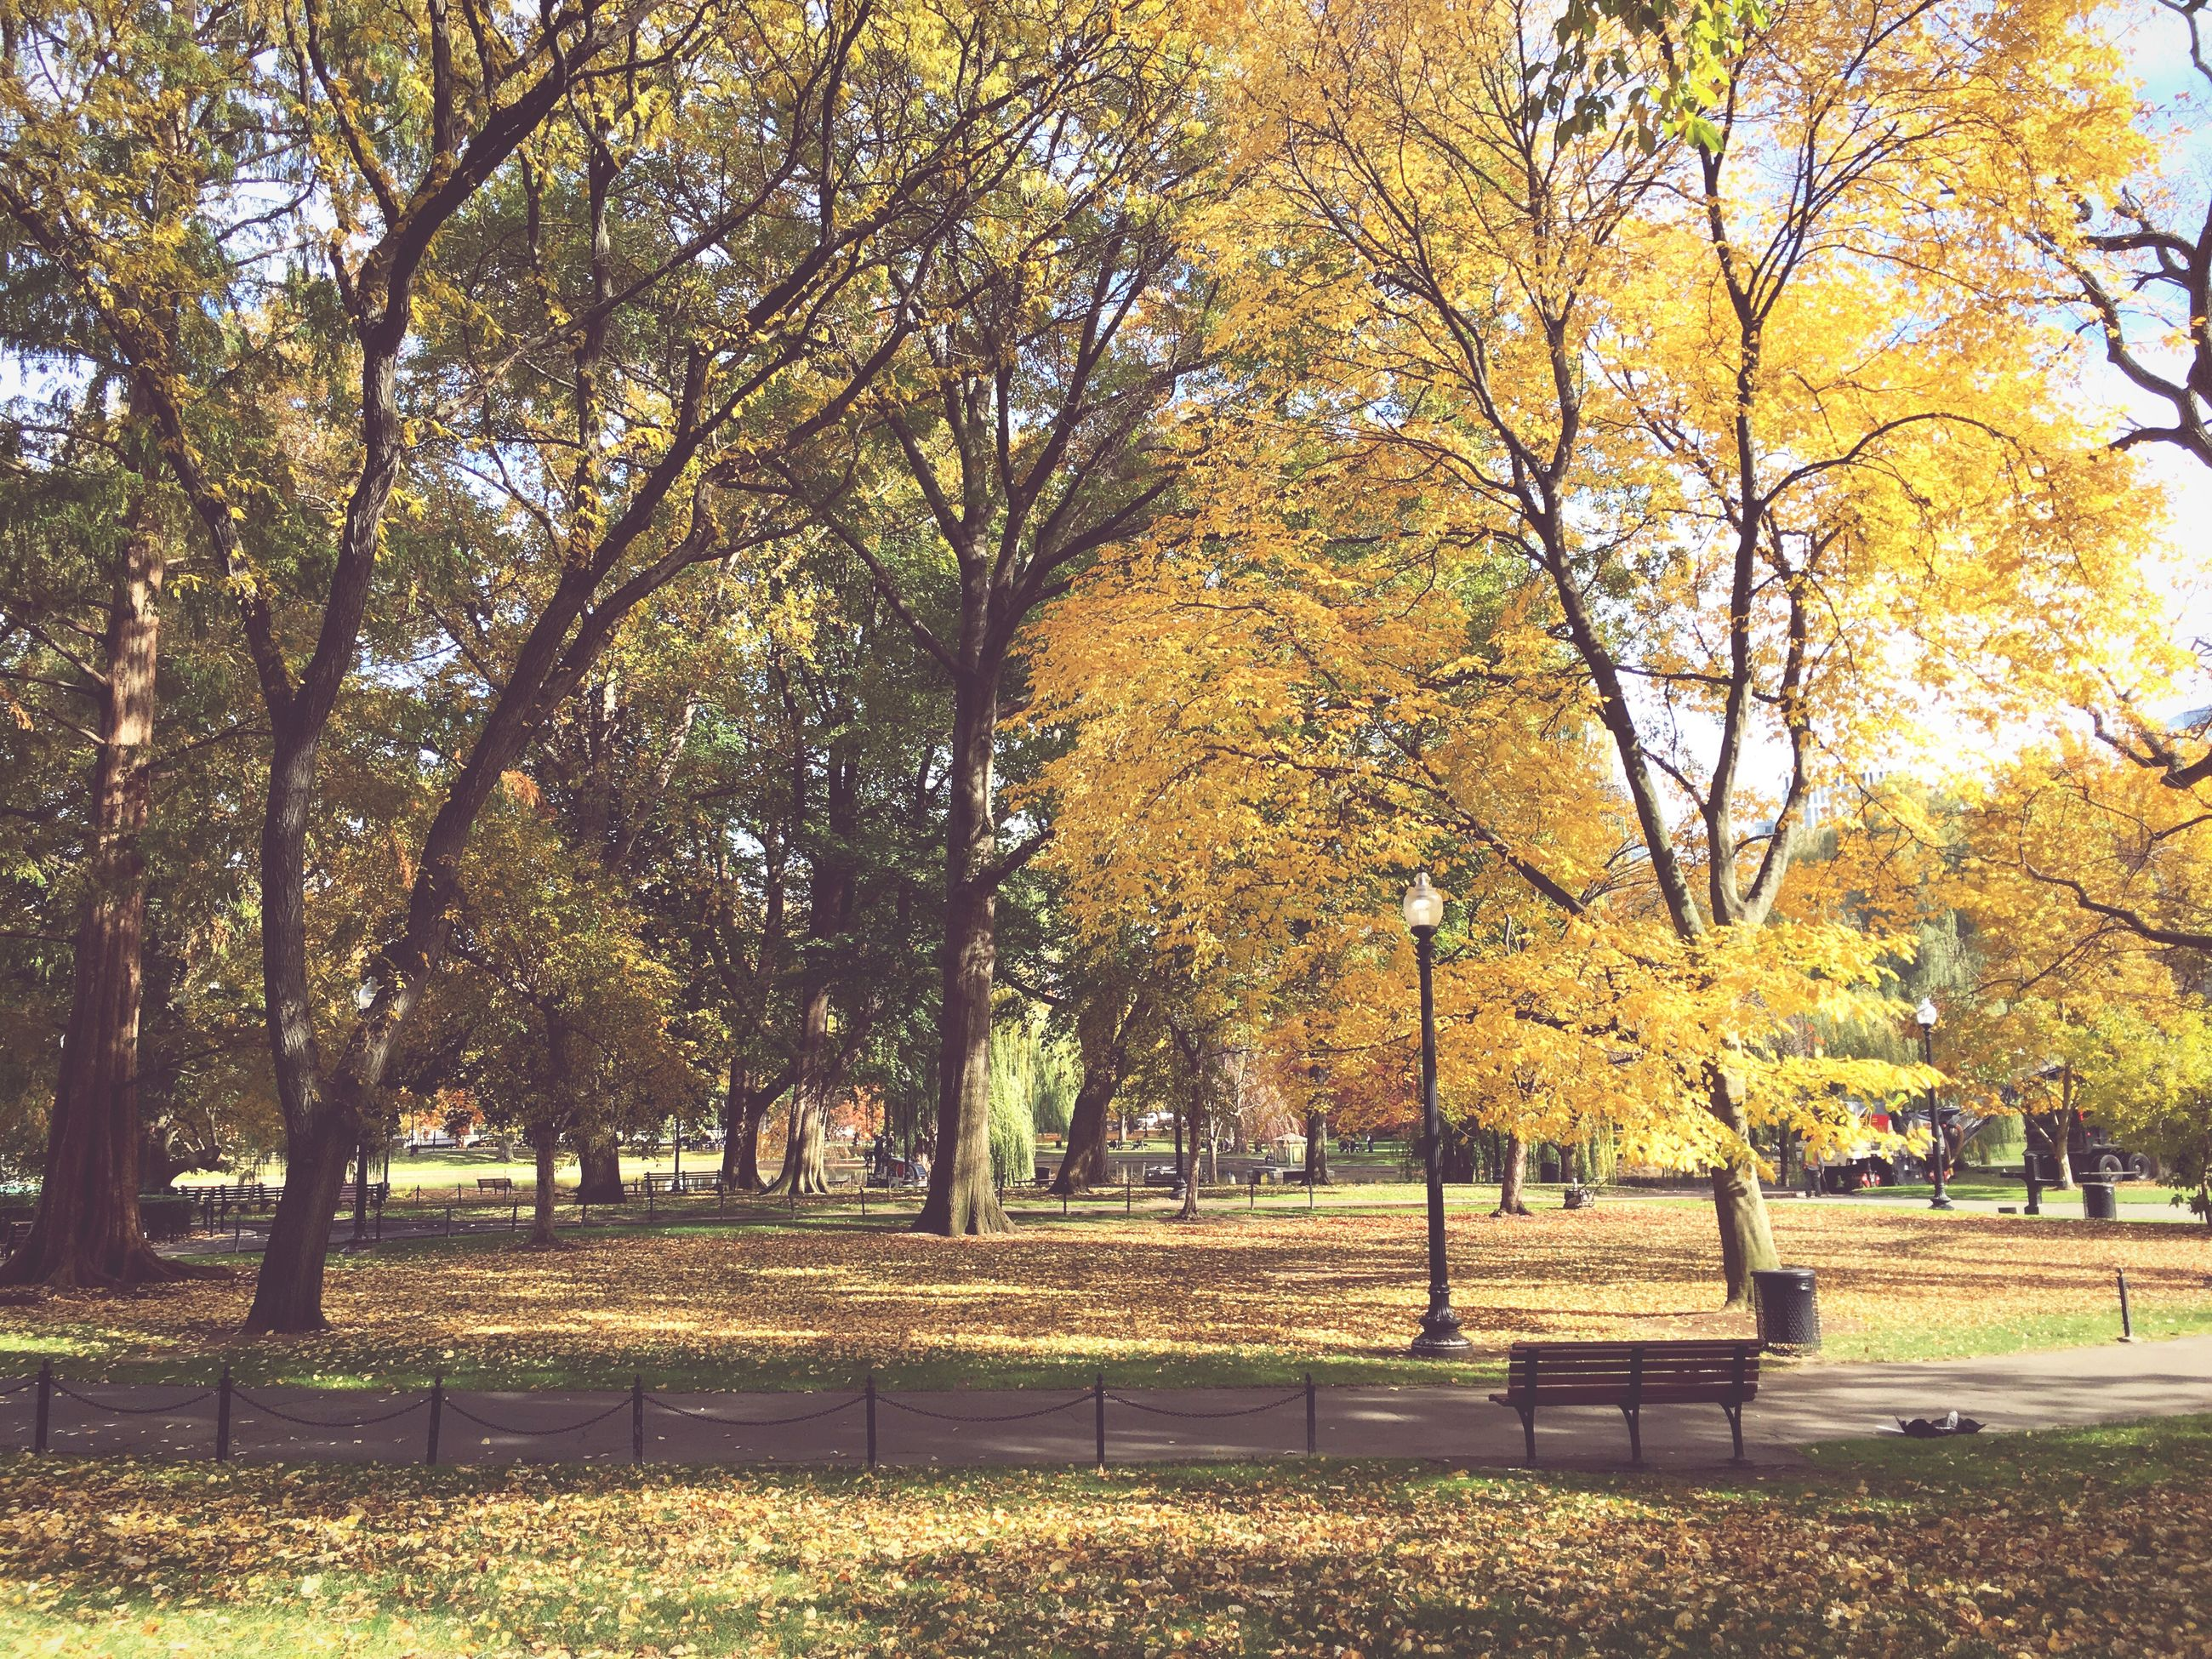 tree, autumn, park - man made space, tranquility, yellow, change, growth, branch, beauty in nature, nature, park, tranquil scene, grass, season, scenics, green color, tree trunk, sunlight, bench, shadow